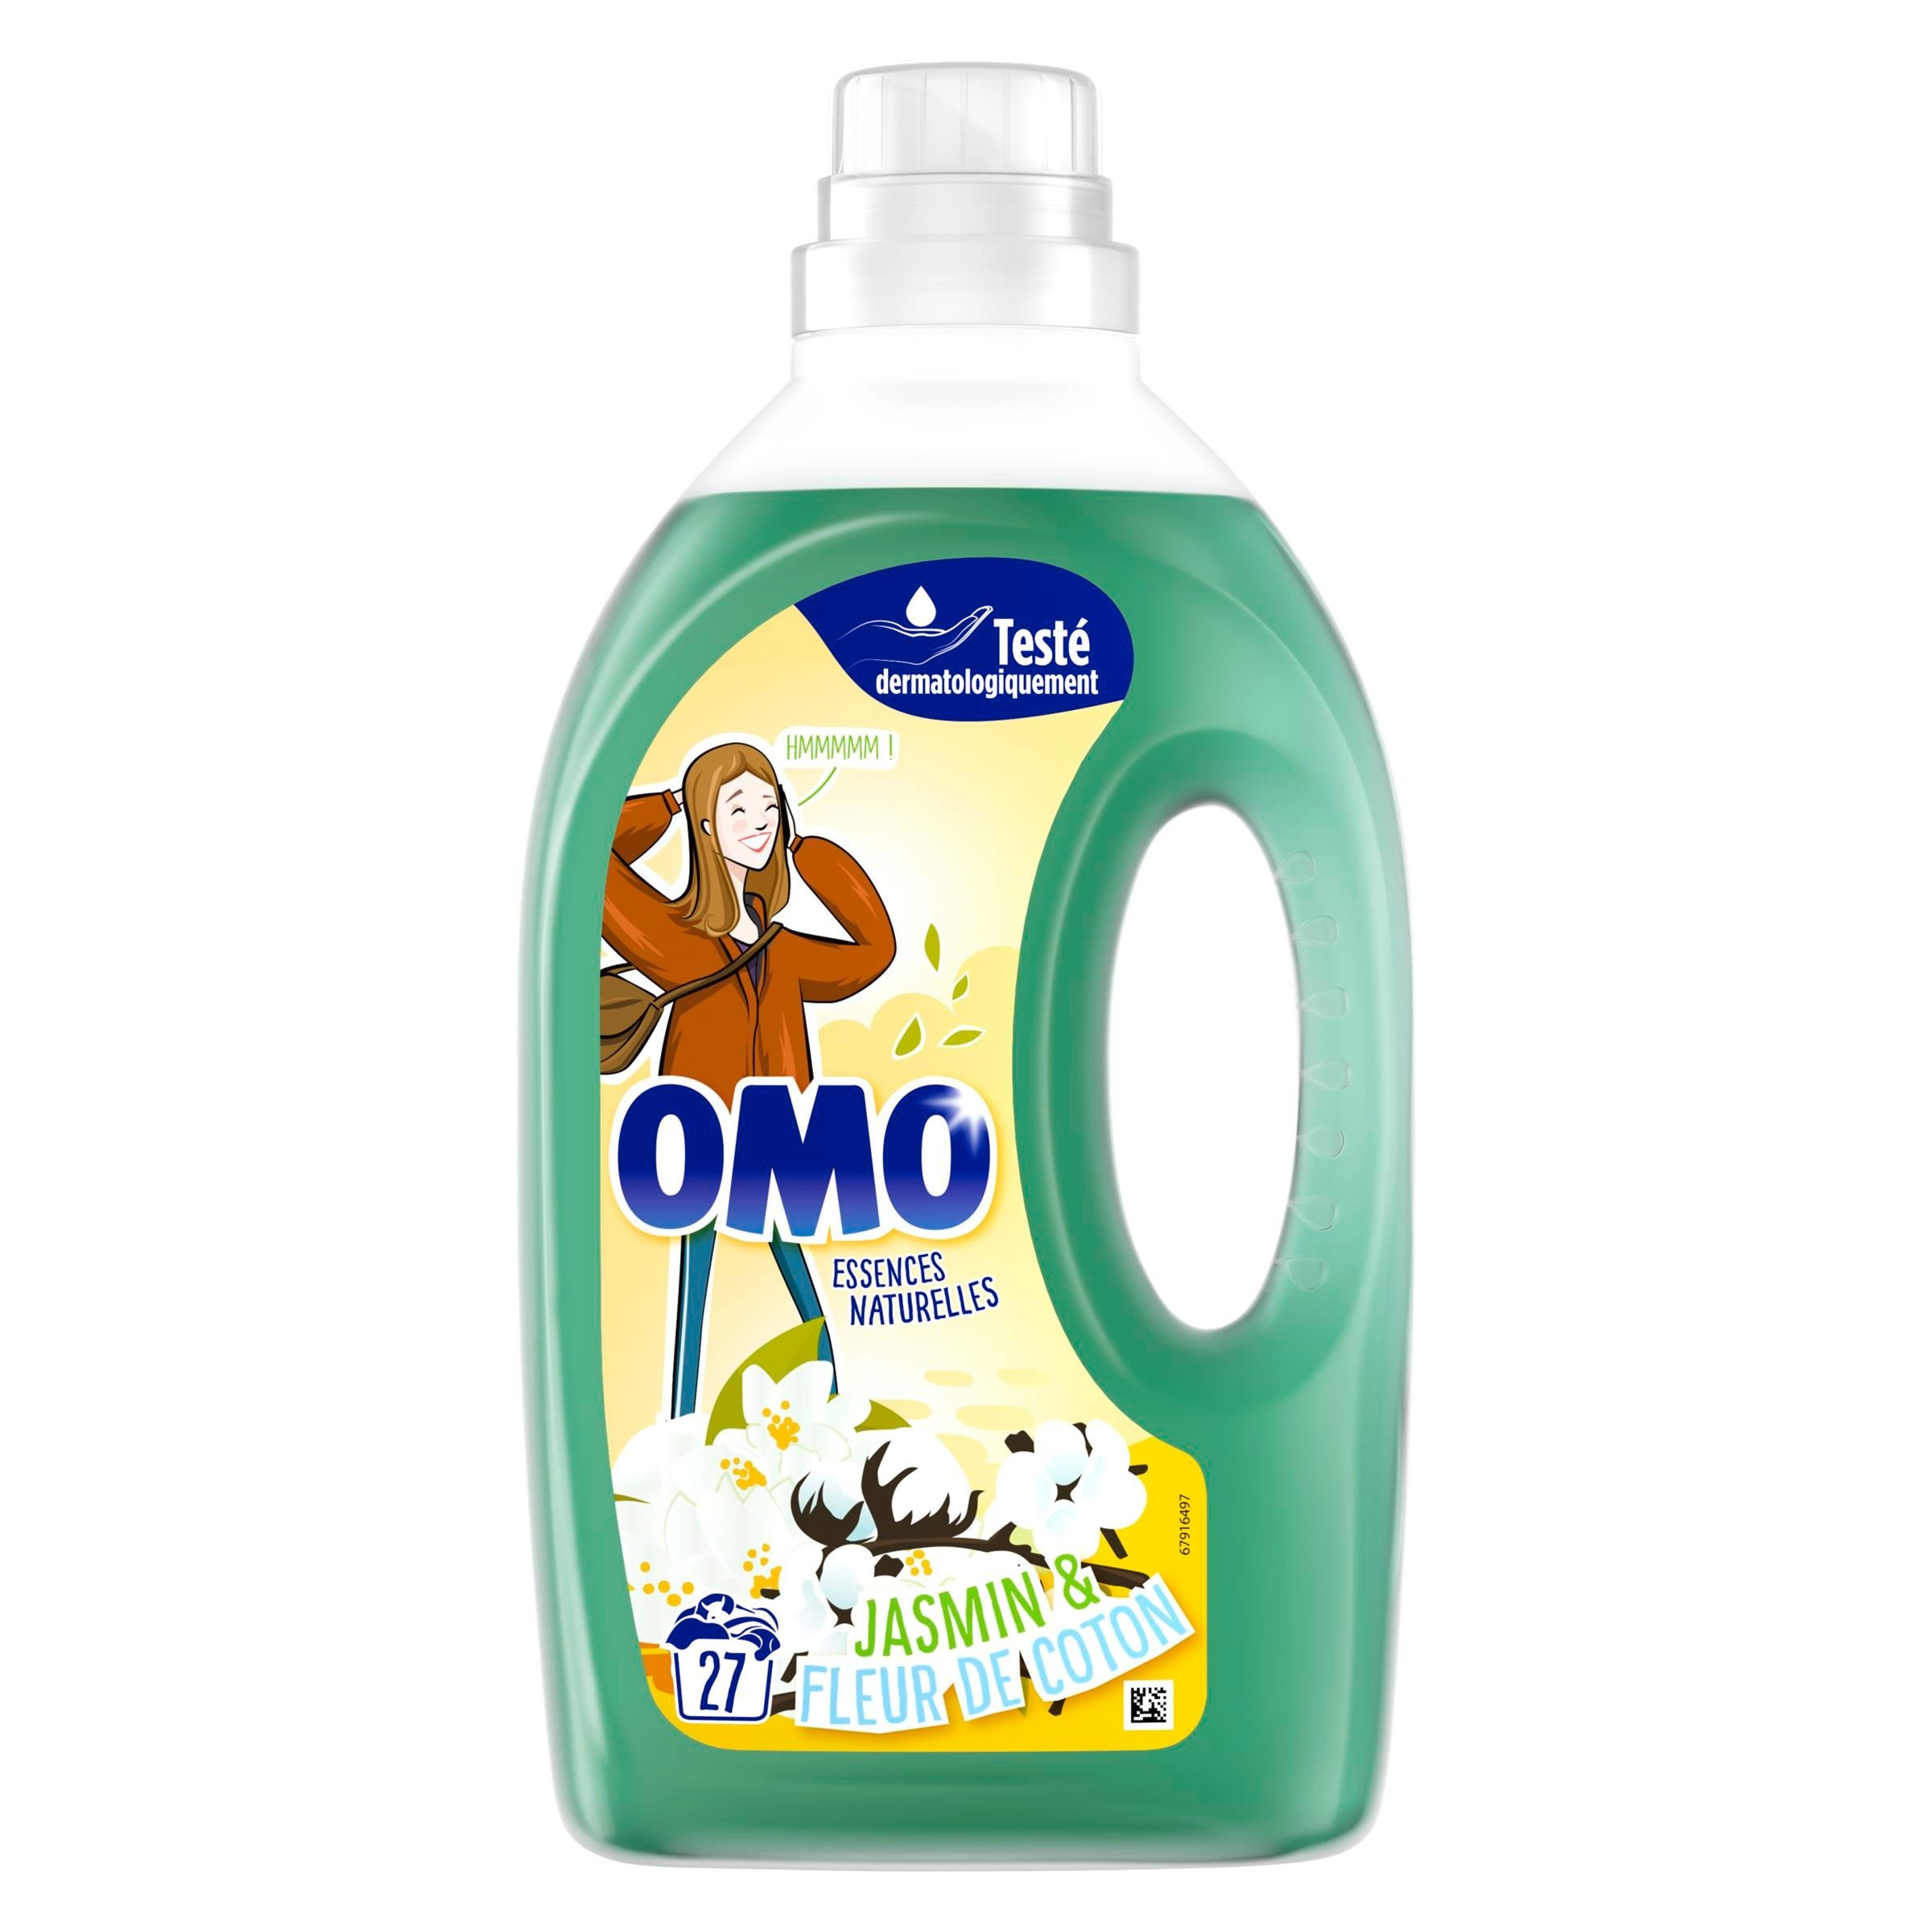 2 Truckloads of Assorted OMO Laundry Detergent, 12,403 Pieces/3,892 Cases, Ext. Retail €116,222, Fauverney, FR